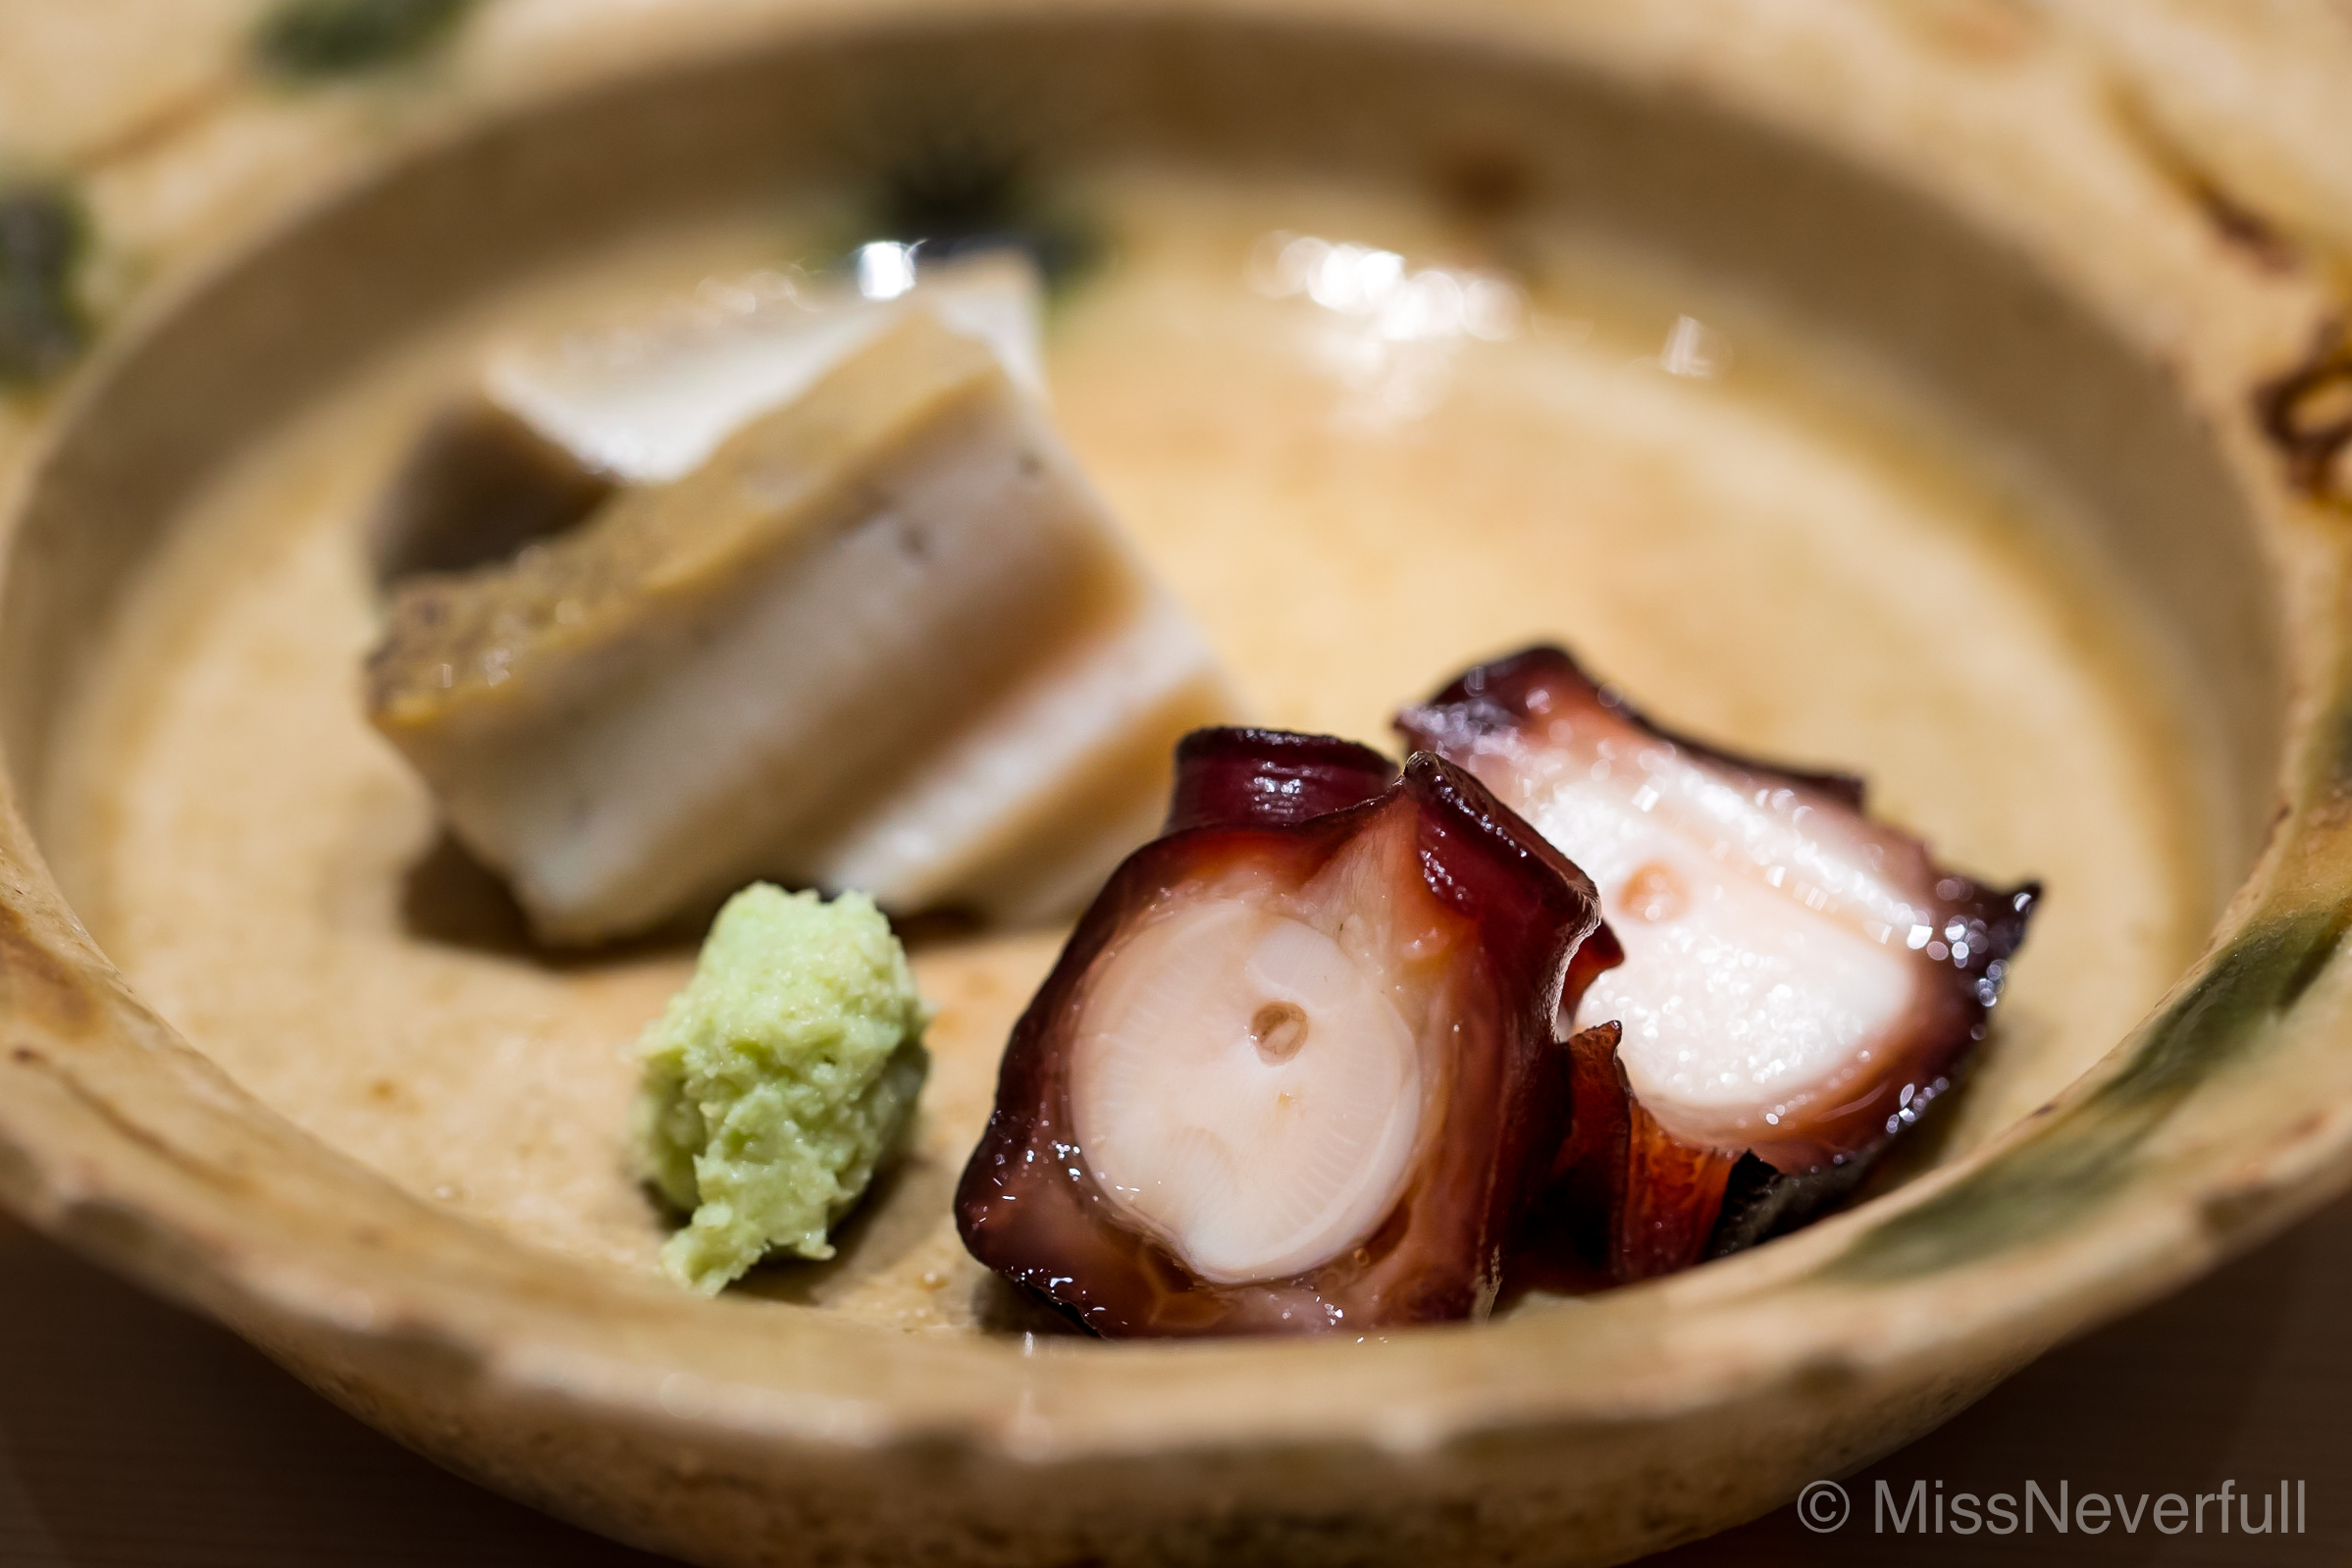 Ostumami 2: Octopus and Abalone - still my favorite octopus tsumami!